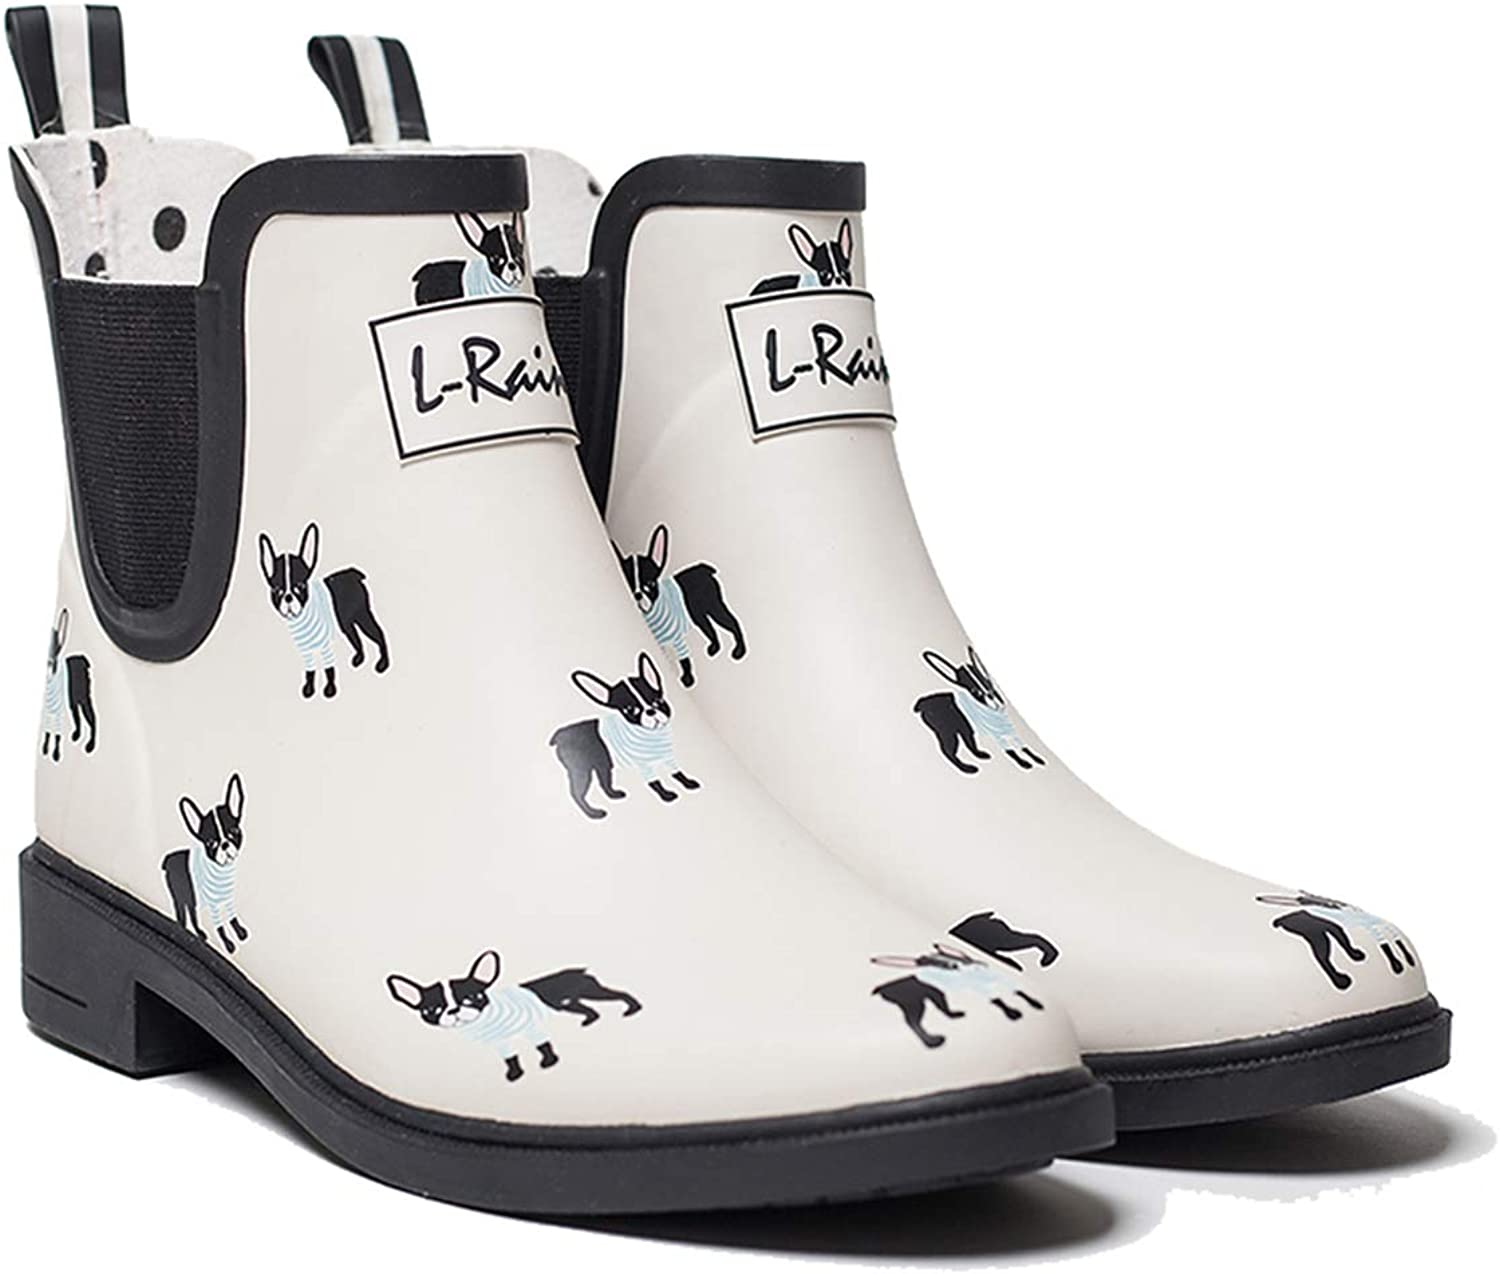 L-Rain LR Women's Short Rain Boots Waterproof and Anti-Slipping Rain shoes Chelsea Booties-White French Bulldog-Size 6